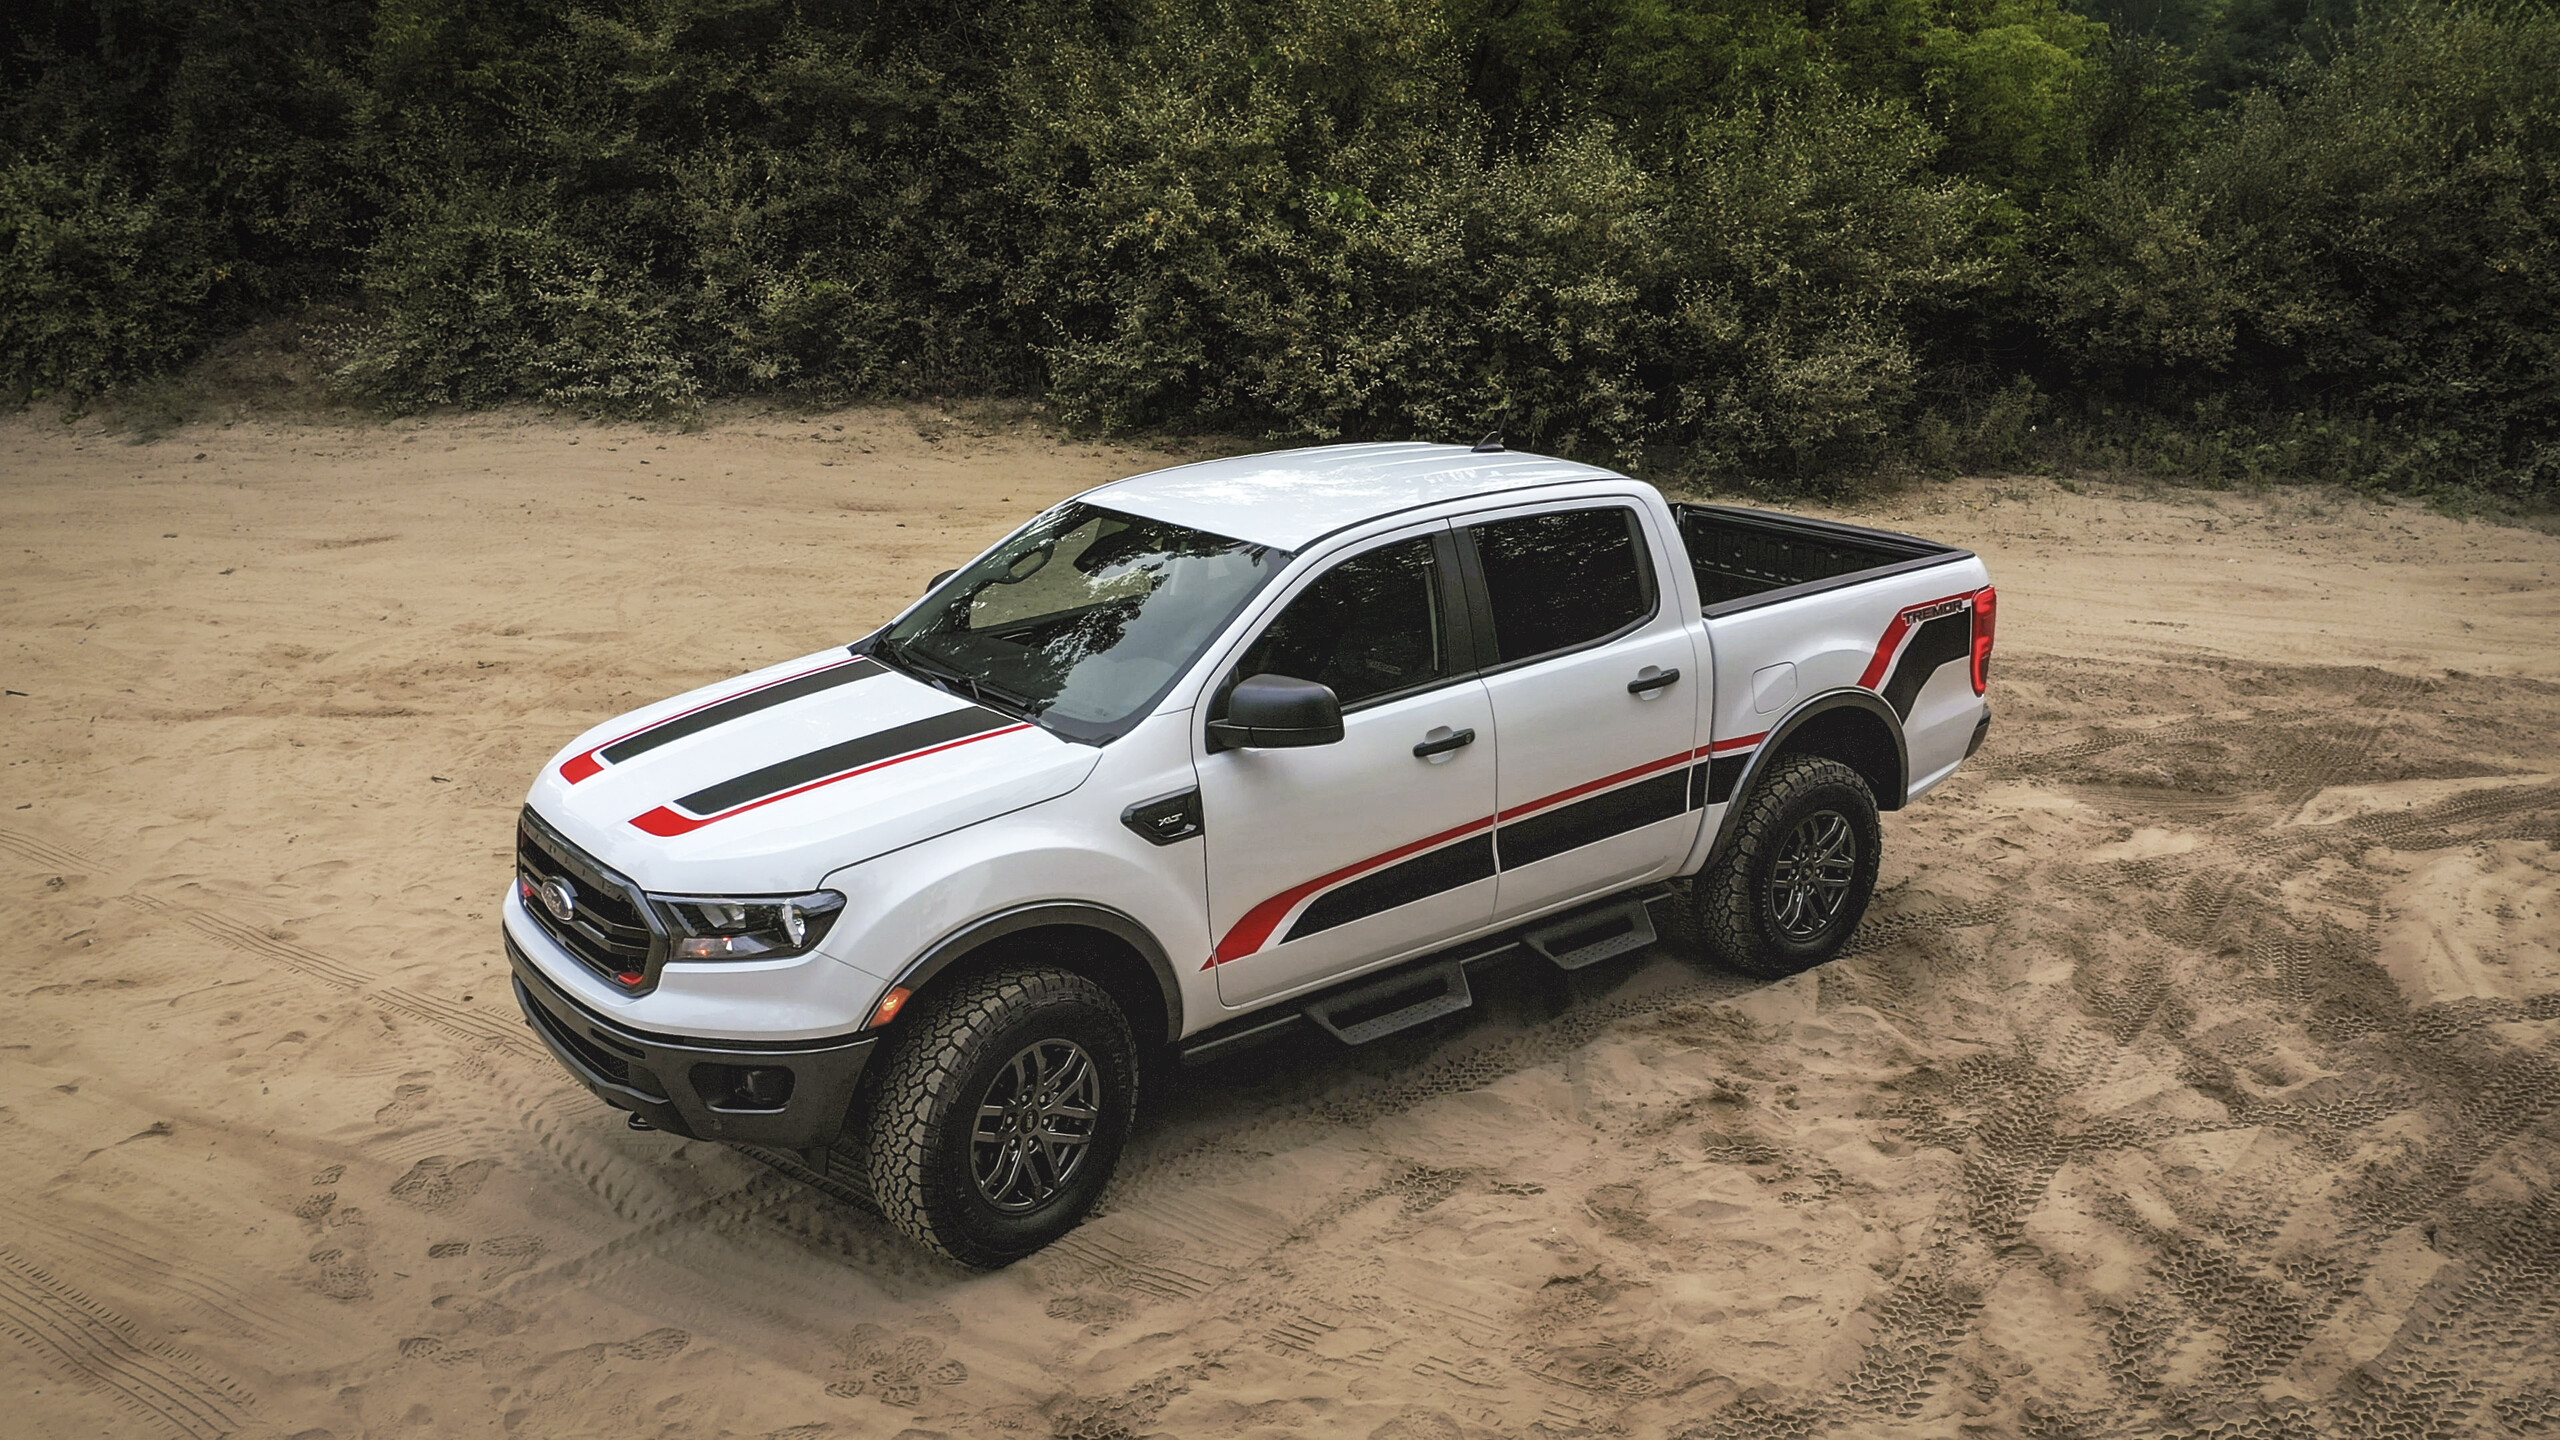 Ford Ranger Tremor Off-Road